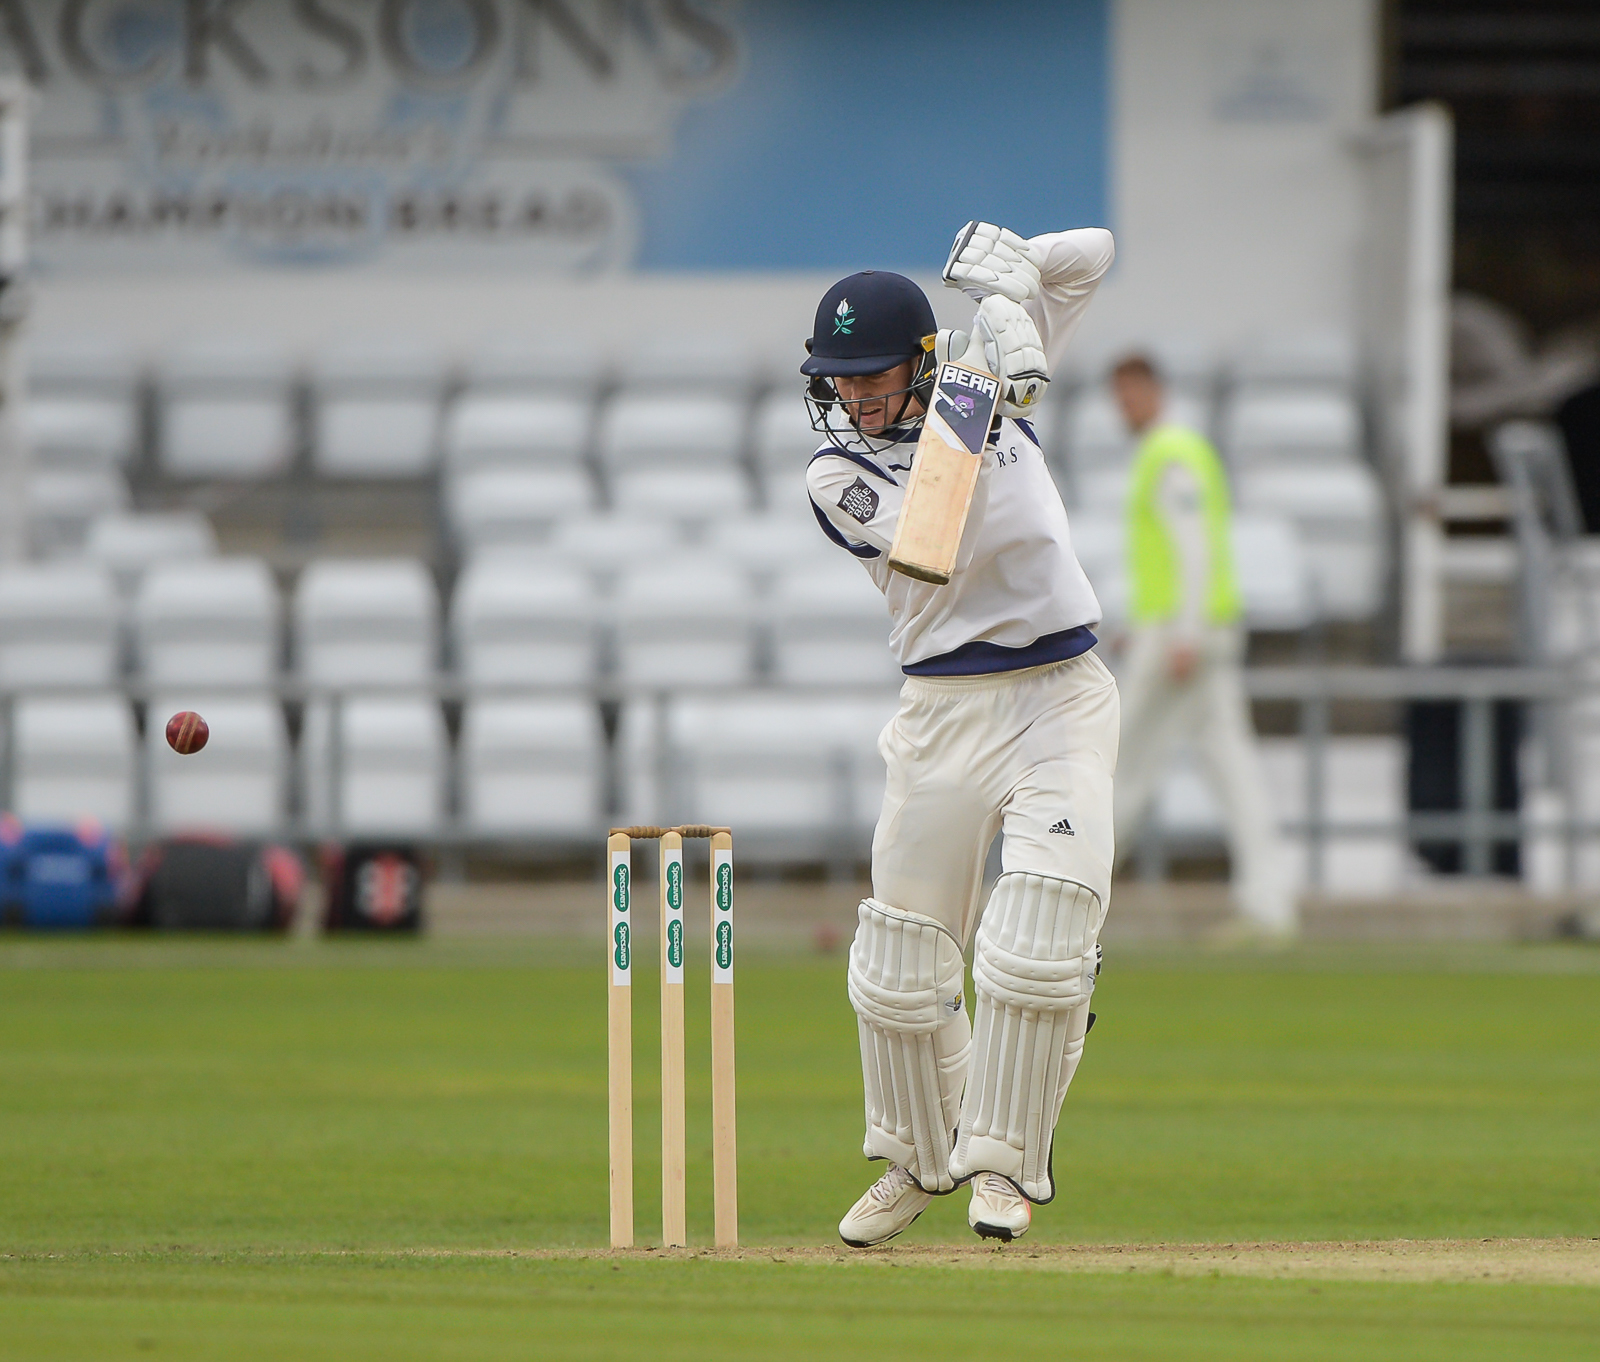 Jonny Tattersall scored just nine in Yorkshire's first innings at Trent Bridge. Picture: Ray Spencer